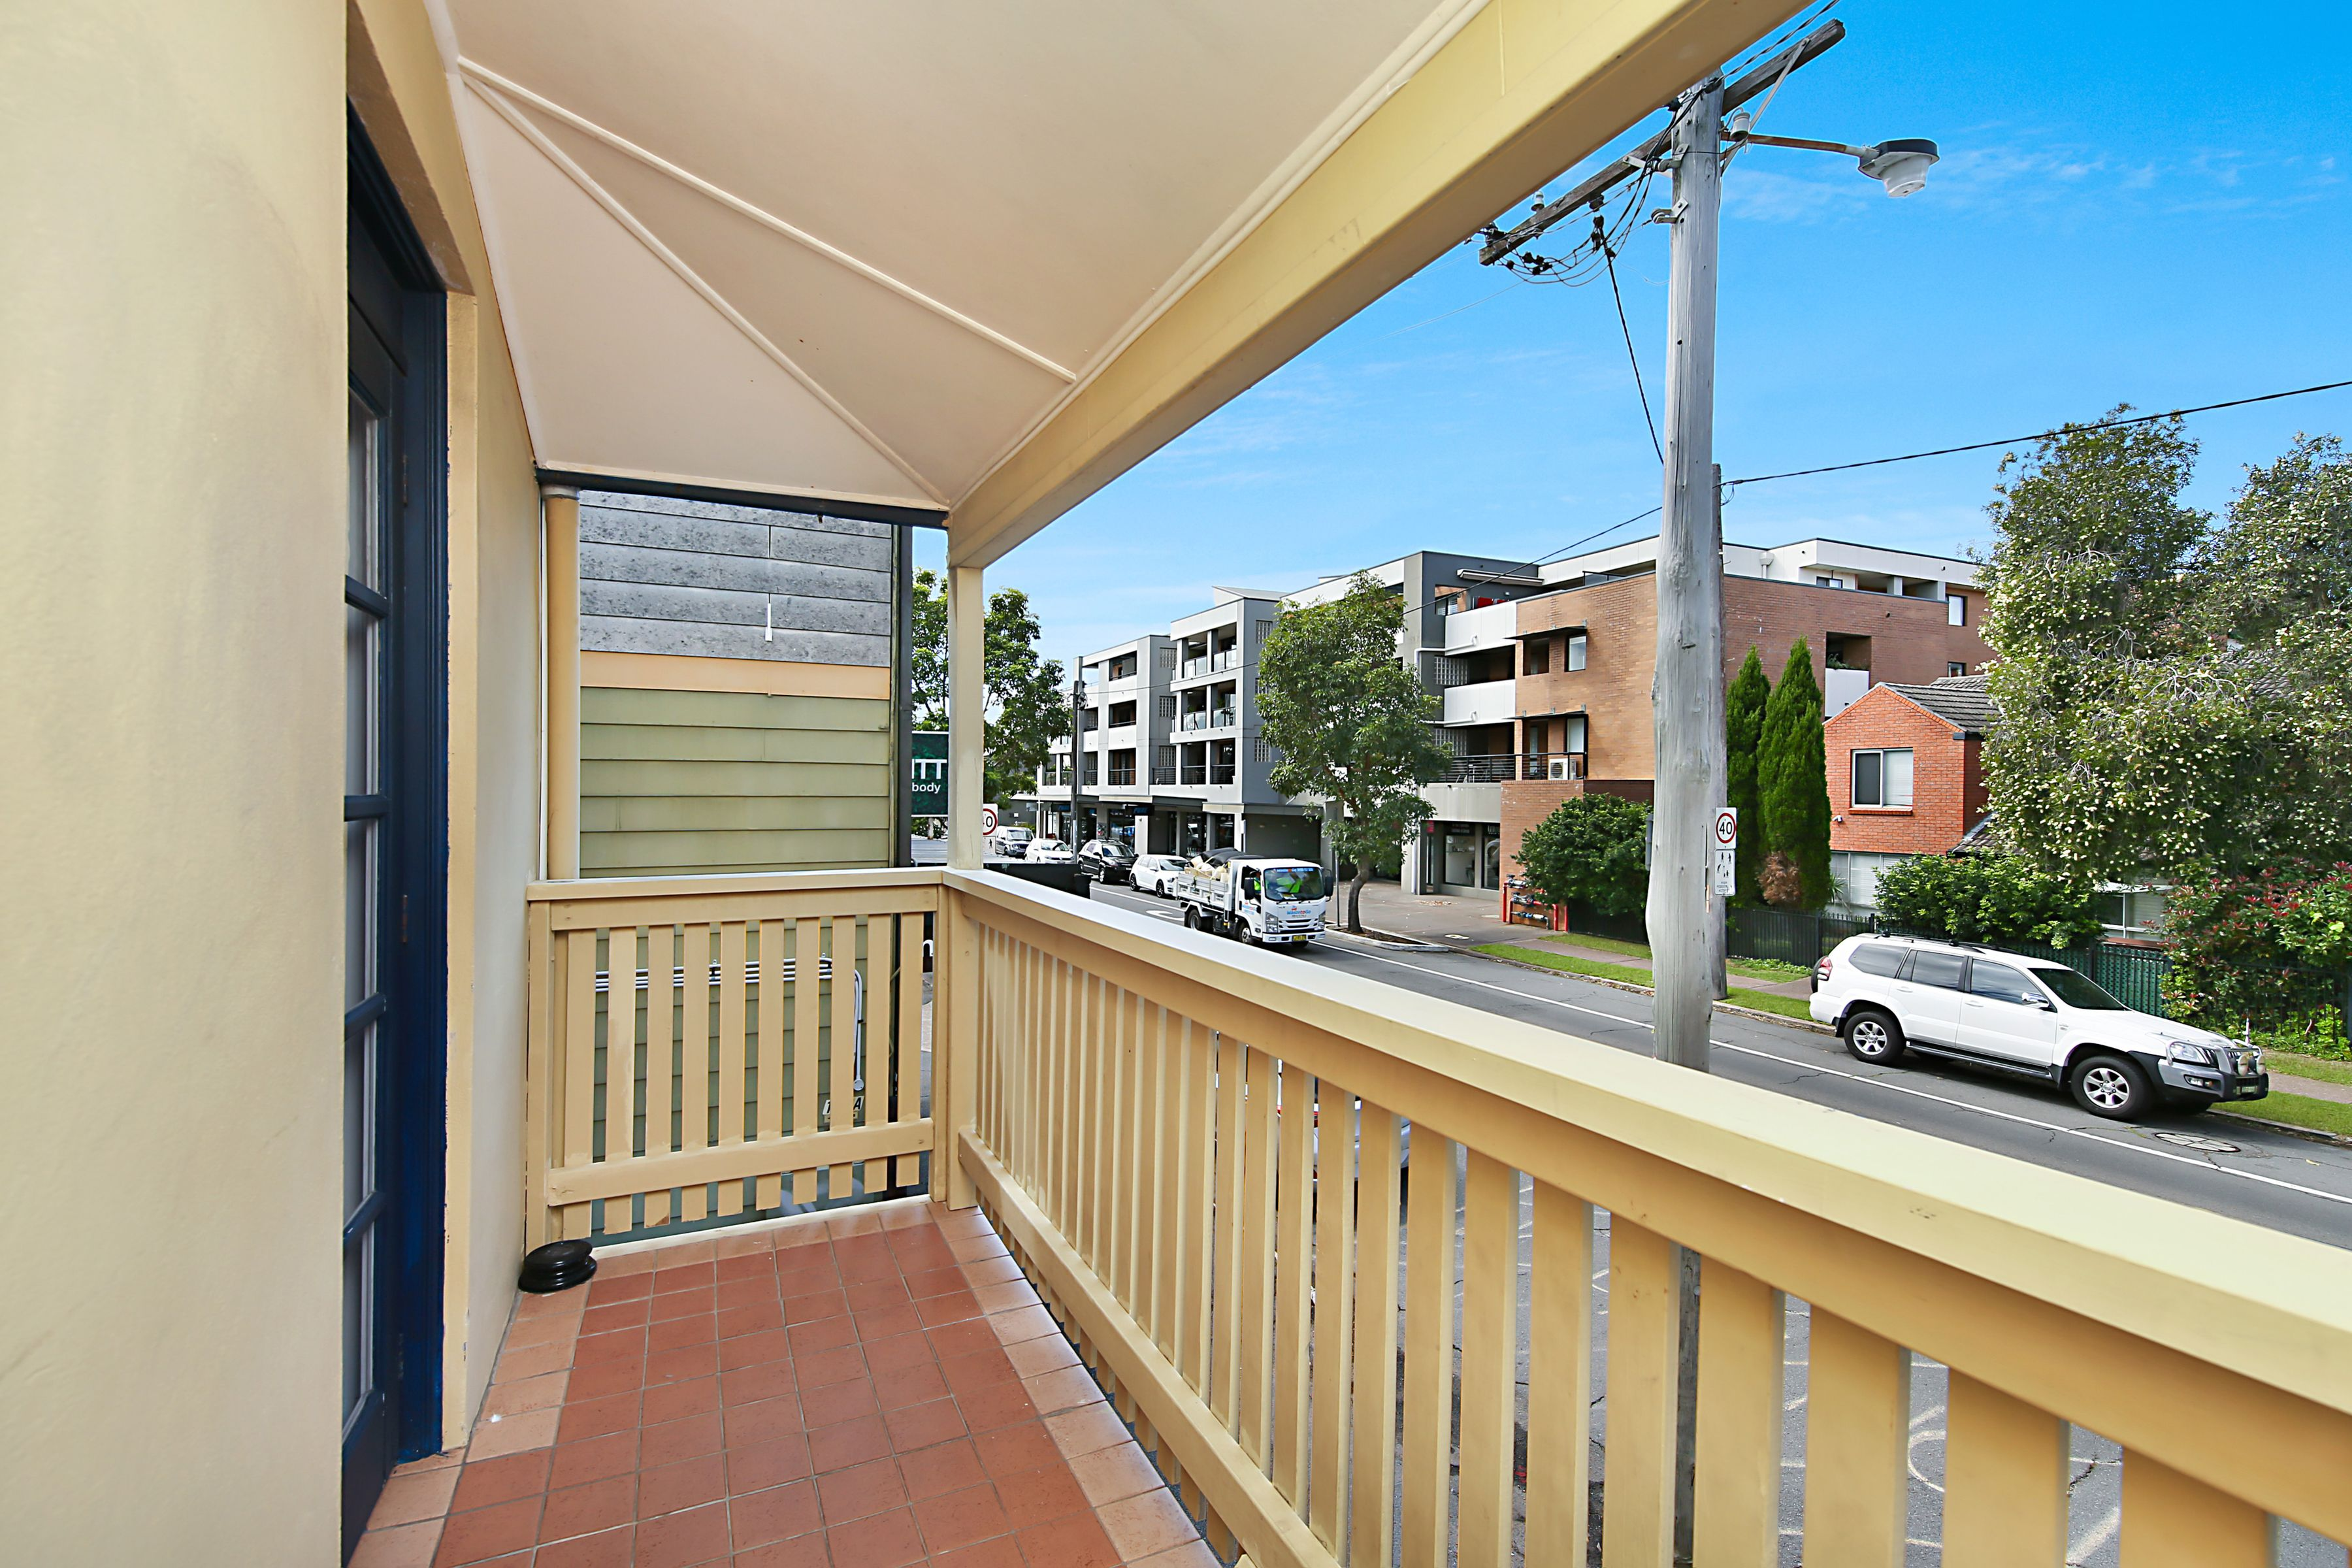 196 Darby Street, Cooks Hill